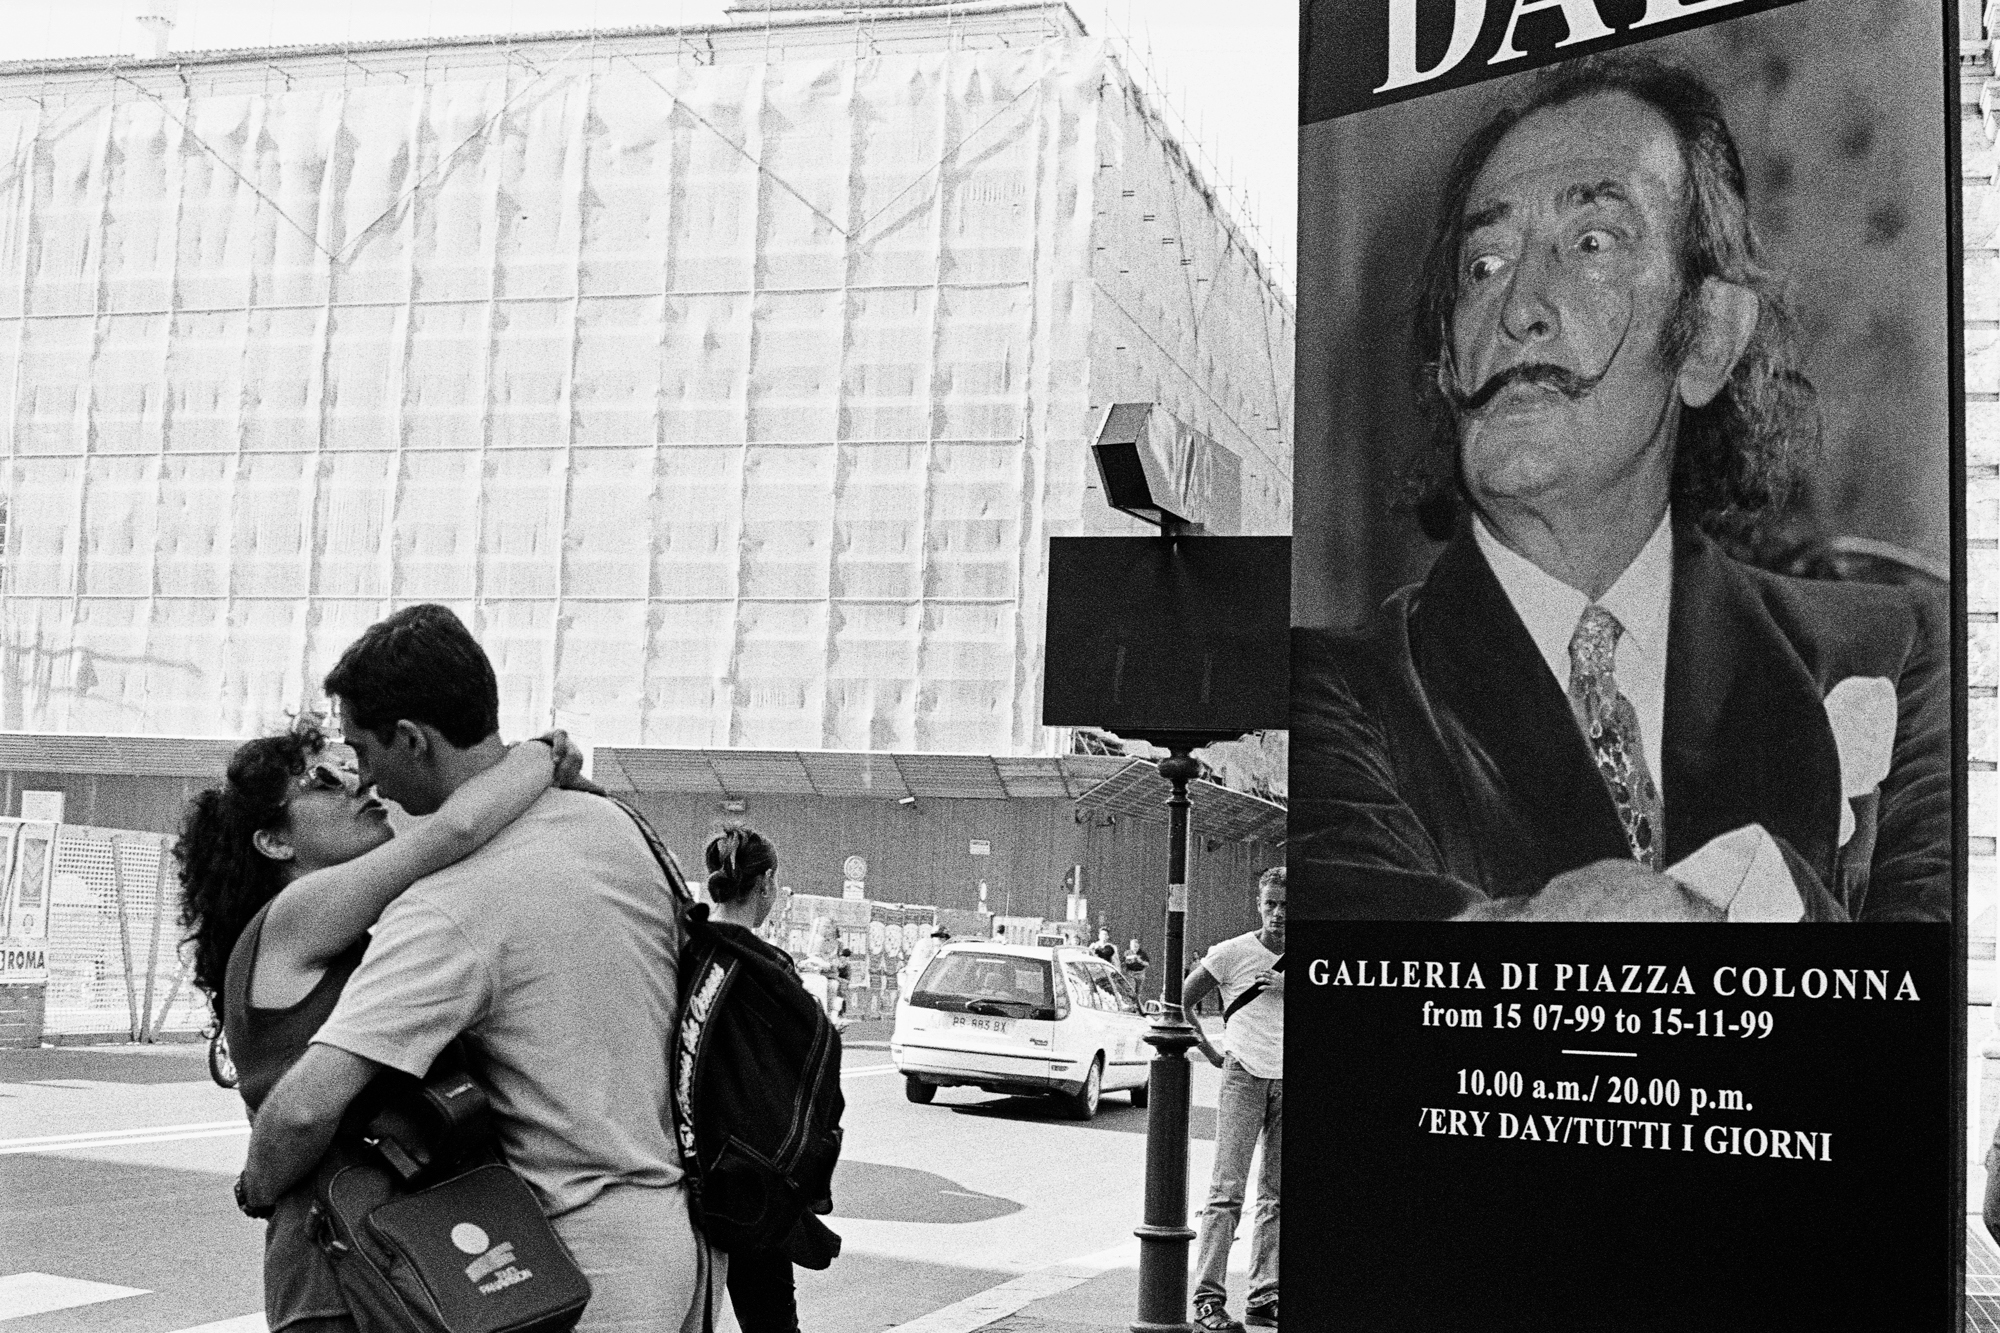 TRAVELS IN ITALY - Dali - Rome - 1999